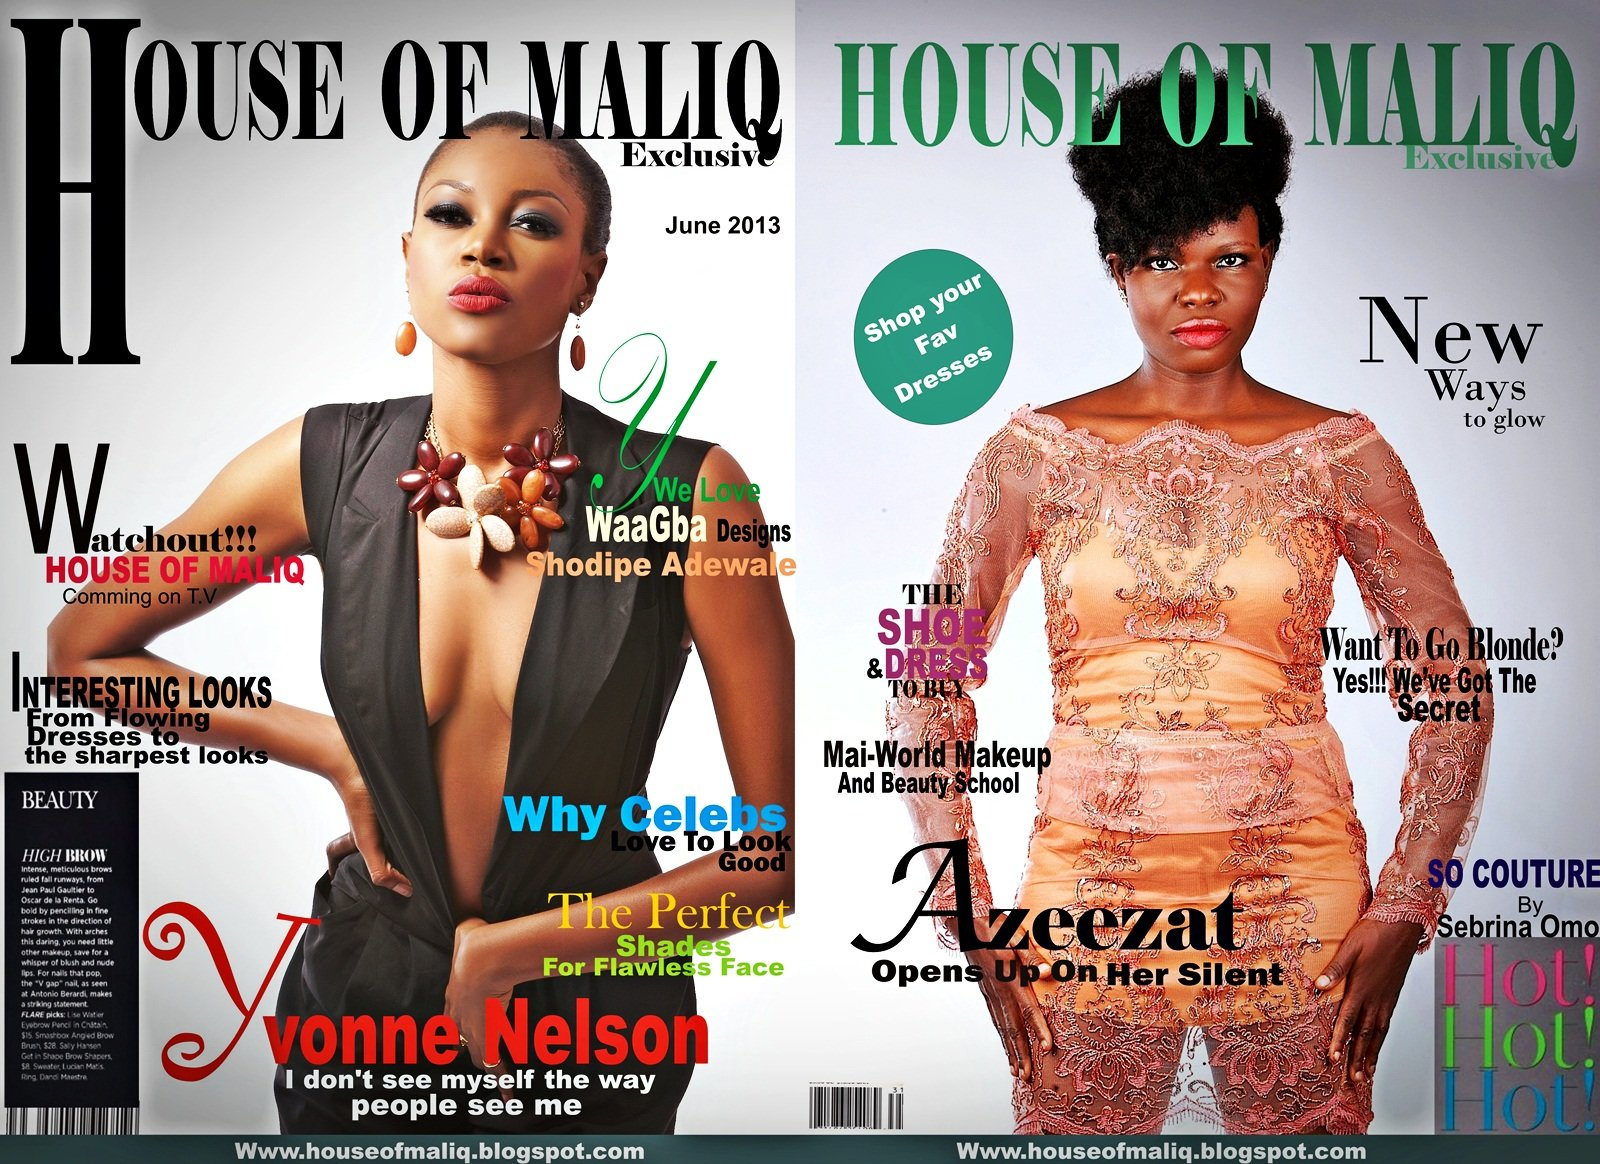 House of maliq cover